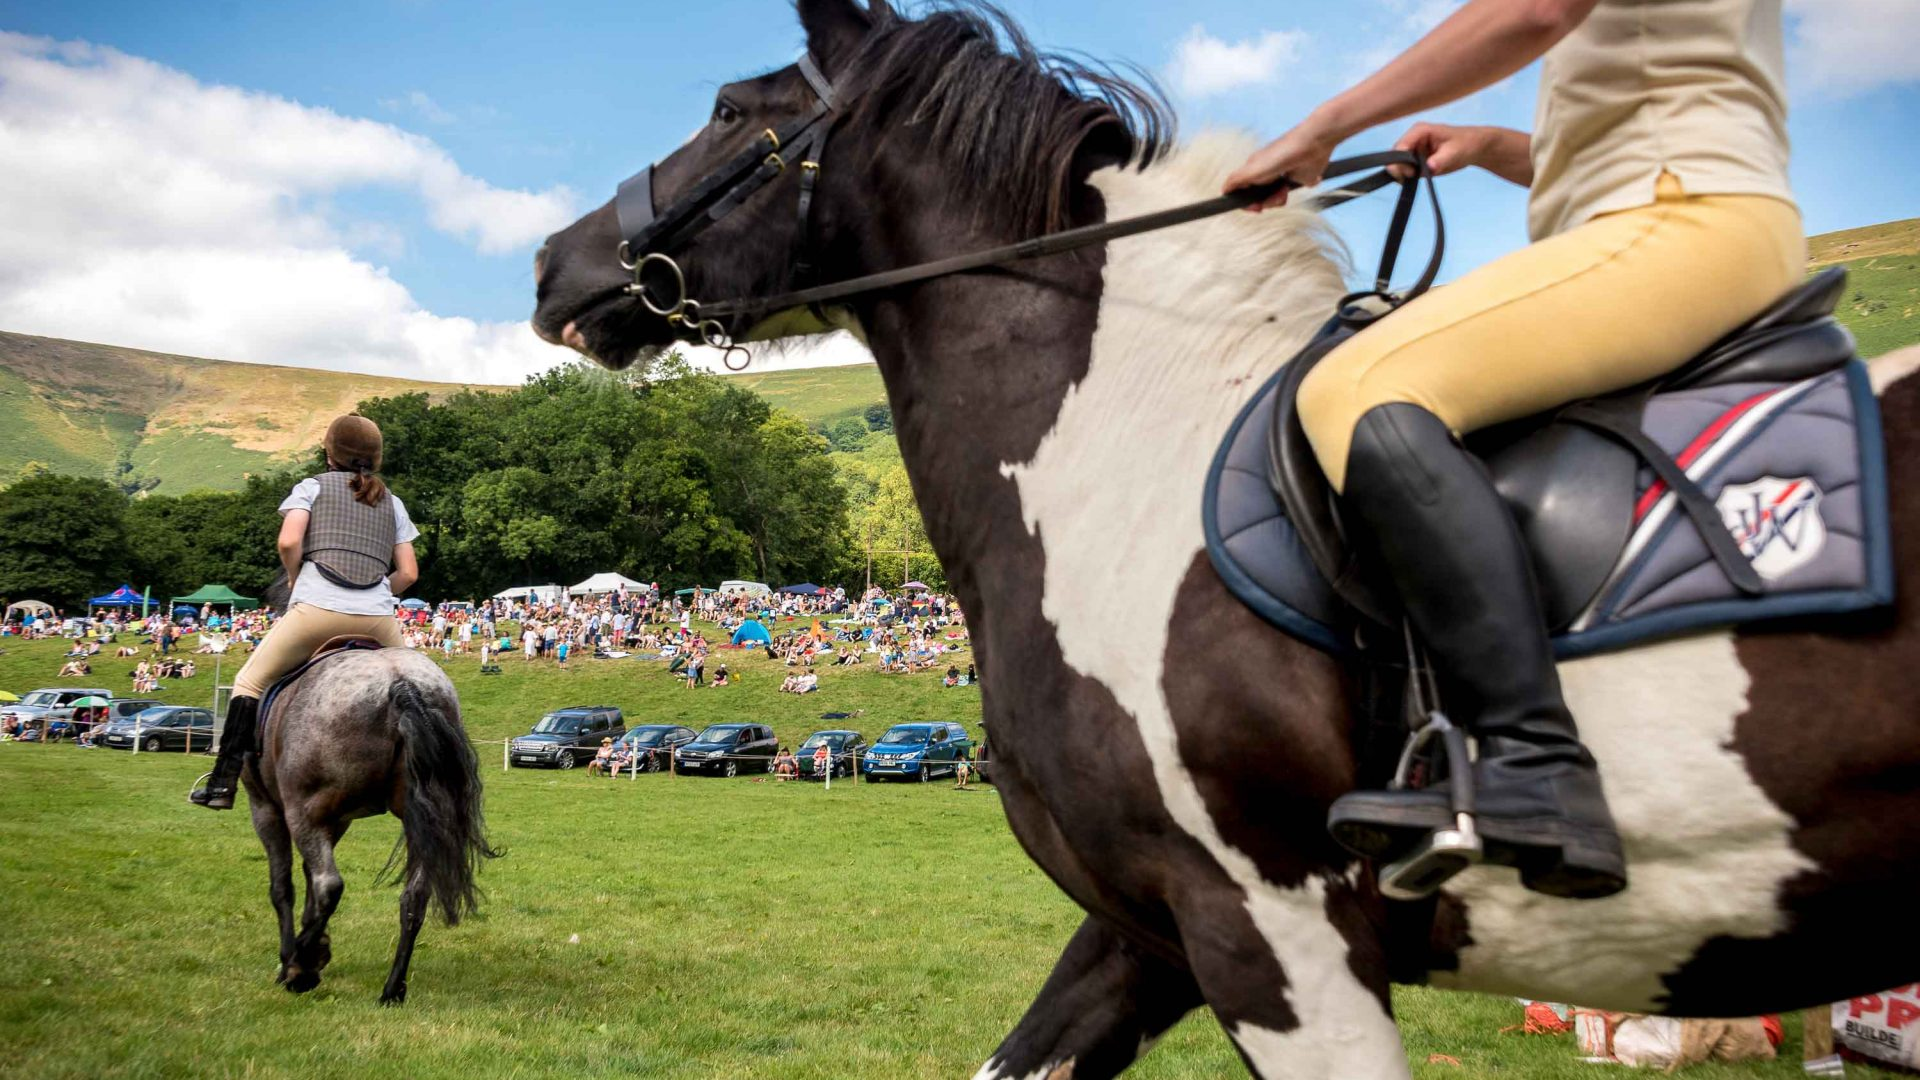 Riders take part in horse-based activities at the Llanthony Valley and District Show in Wales.